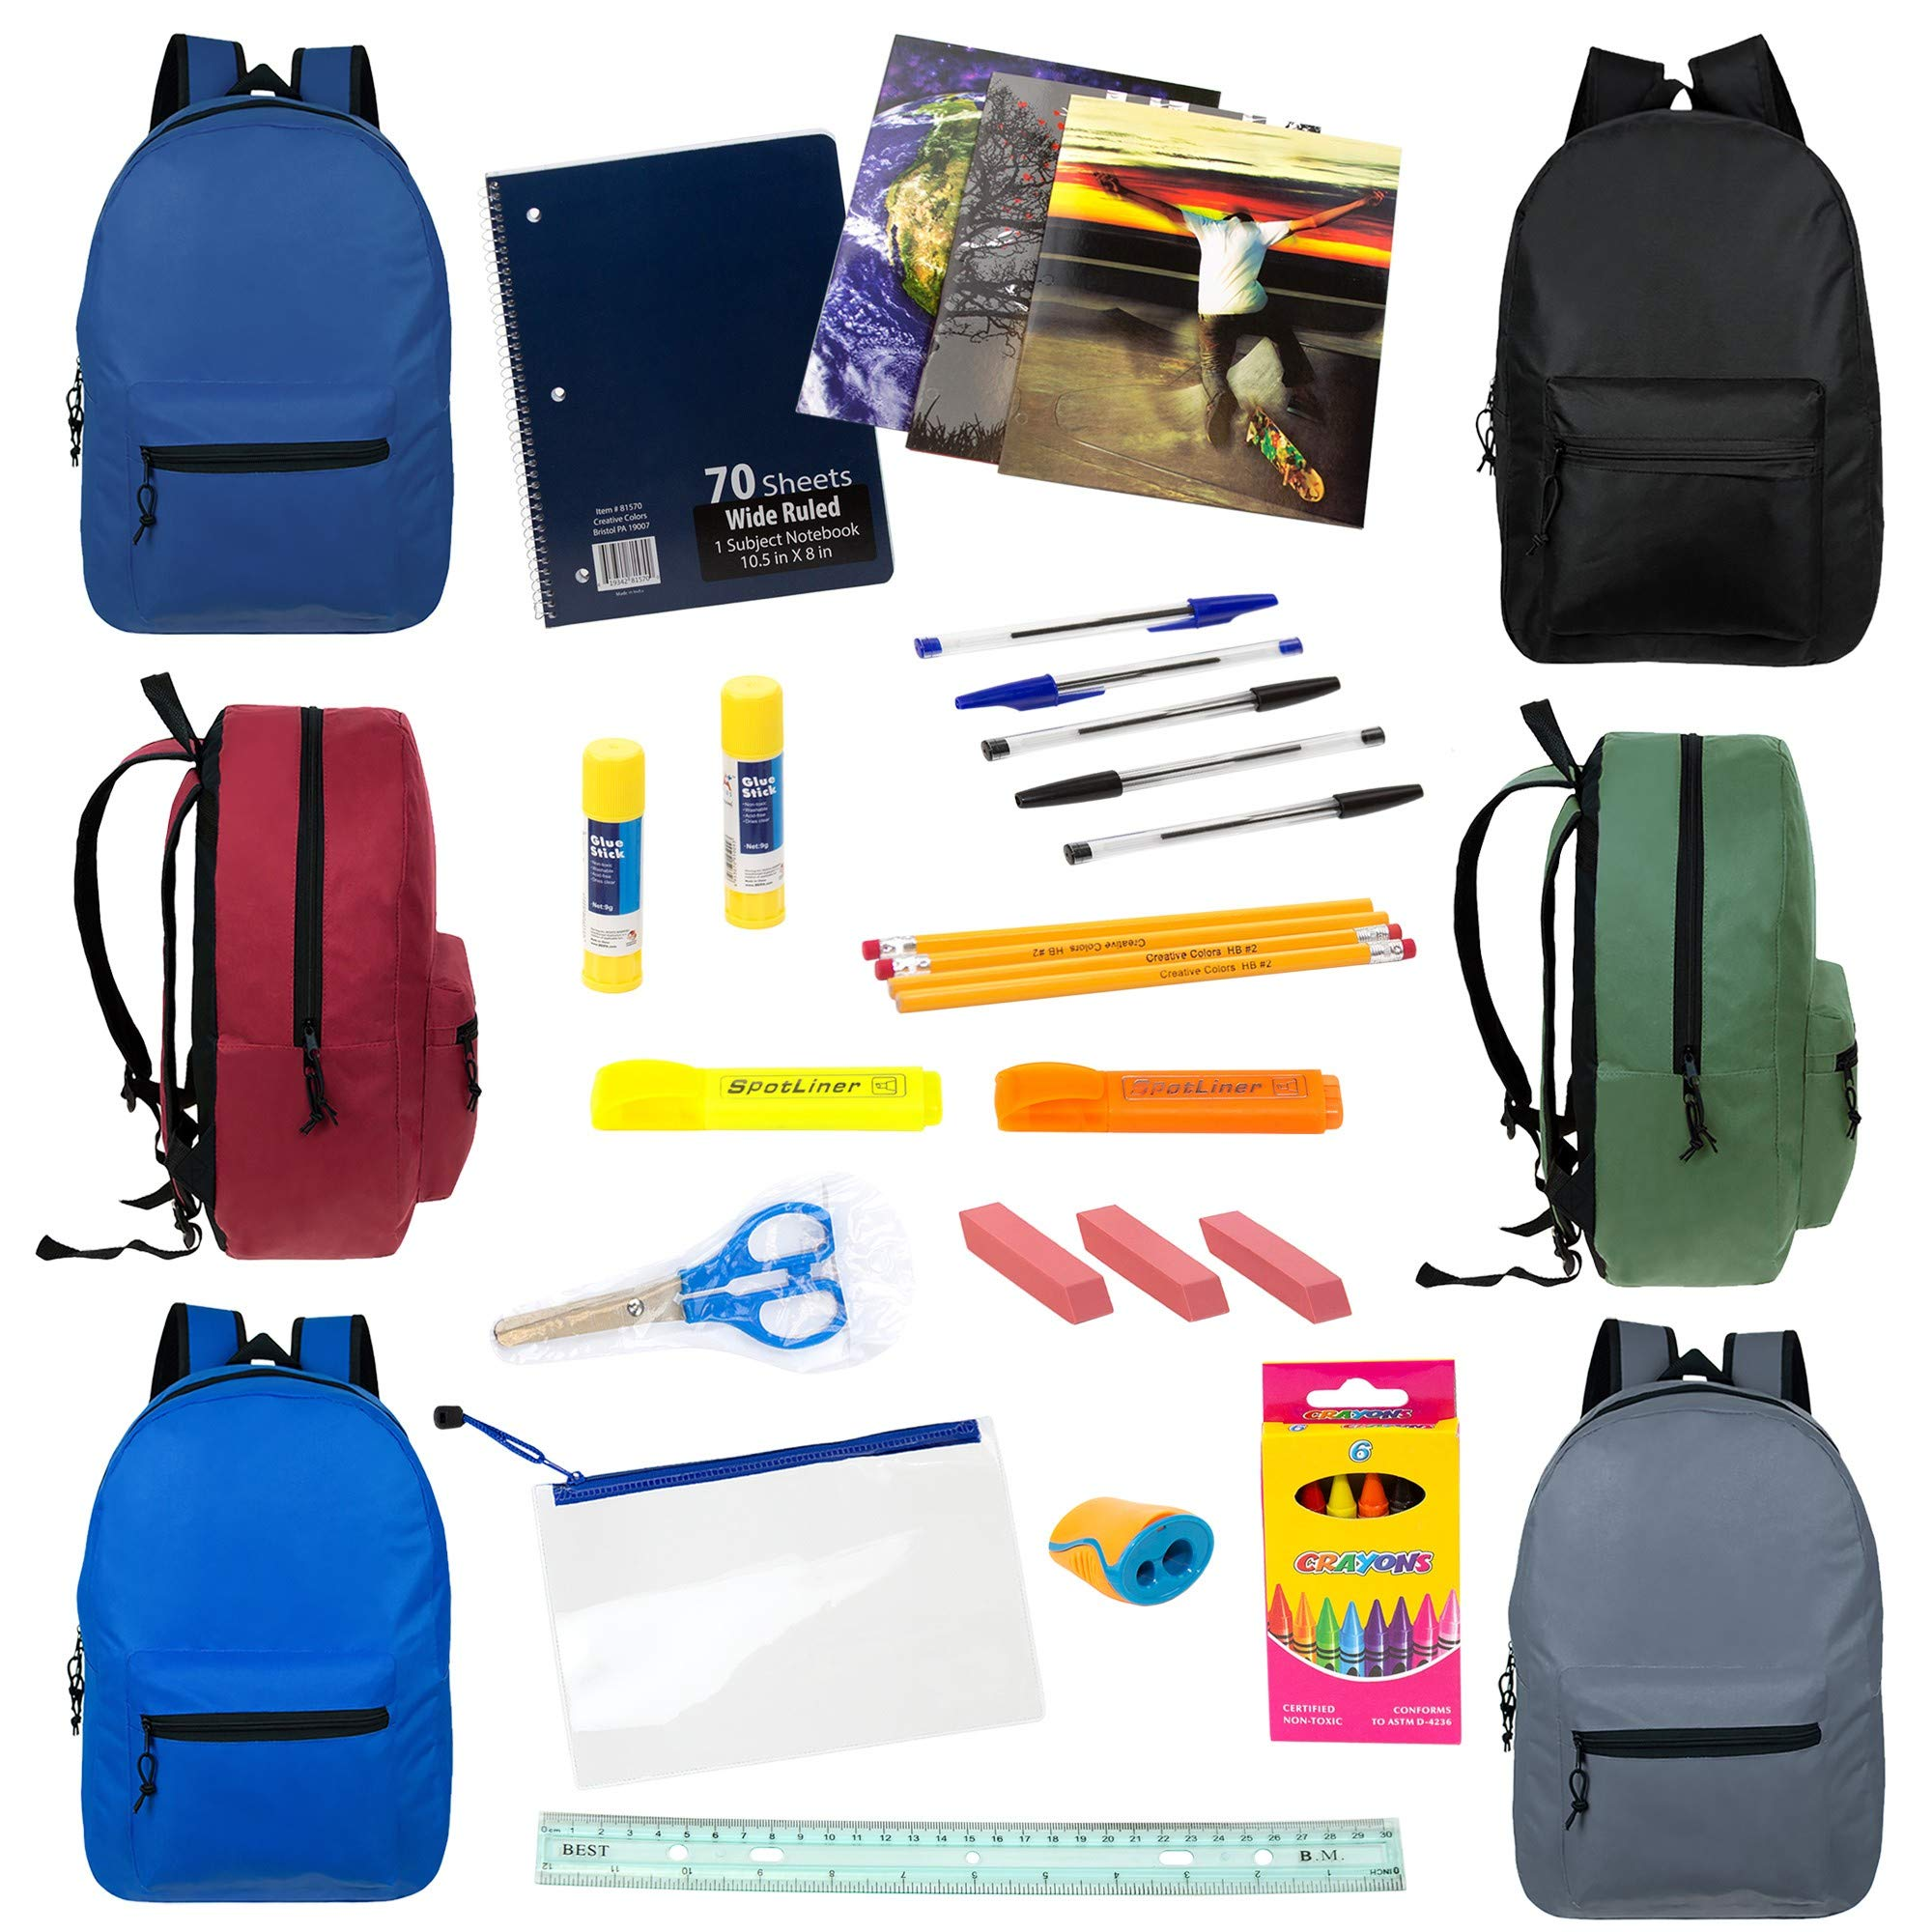 19'' Wholesale Backpacks in 6 Assorted Colors with 24 Piece School Supply Kit - Bulk Case of 12